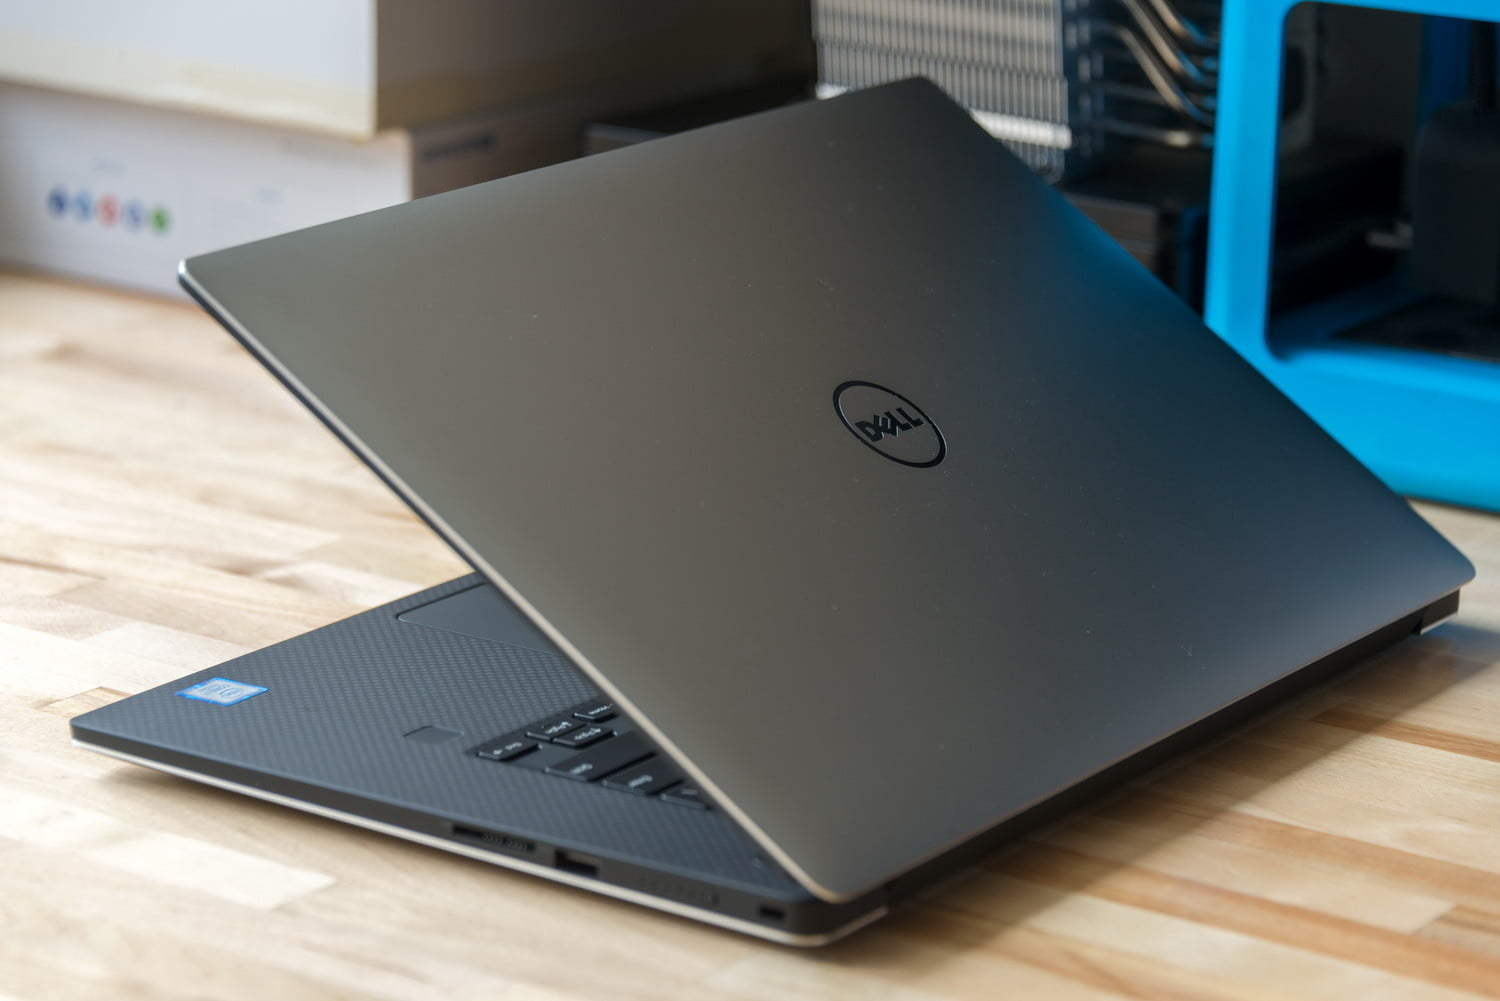 Next Dell XPS 15 Will Have Better Thunderbolt 3 Support, VP